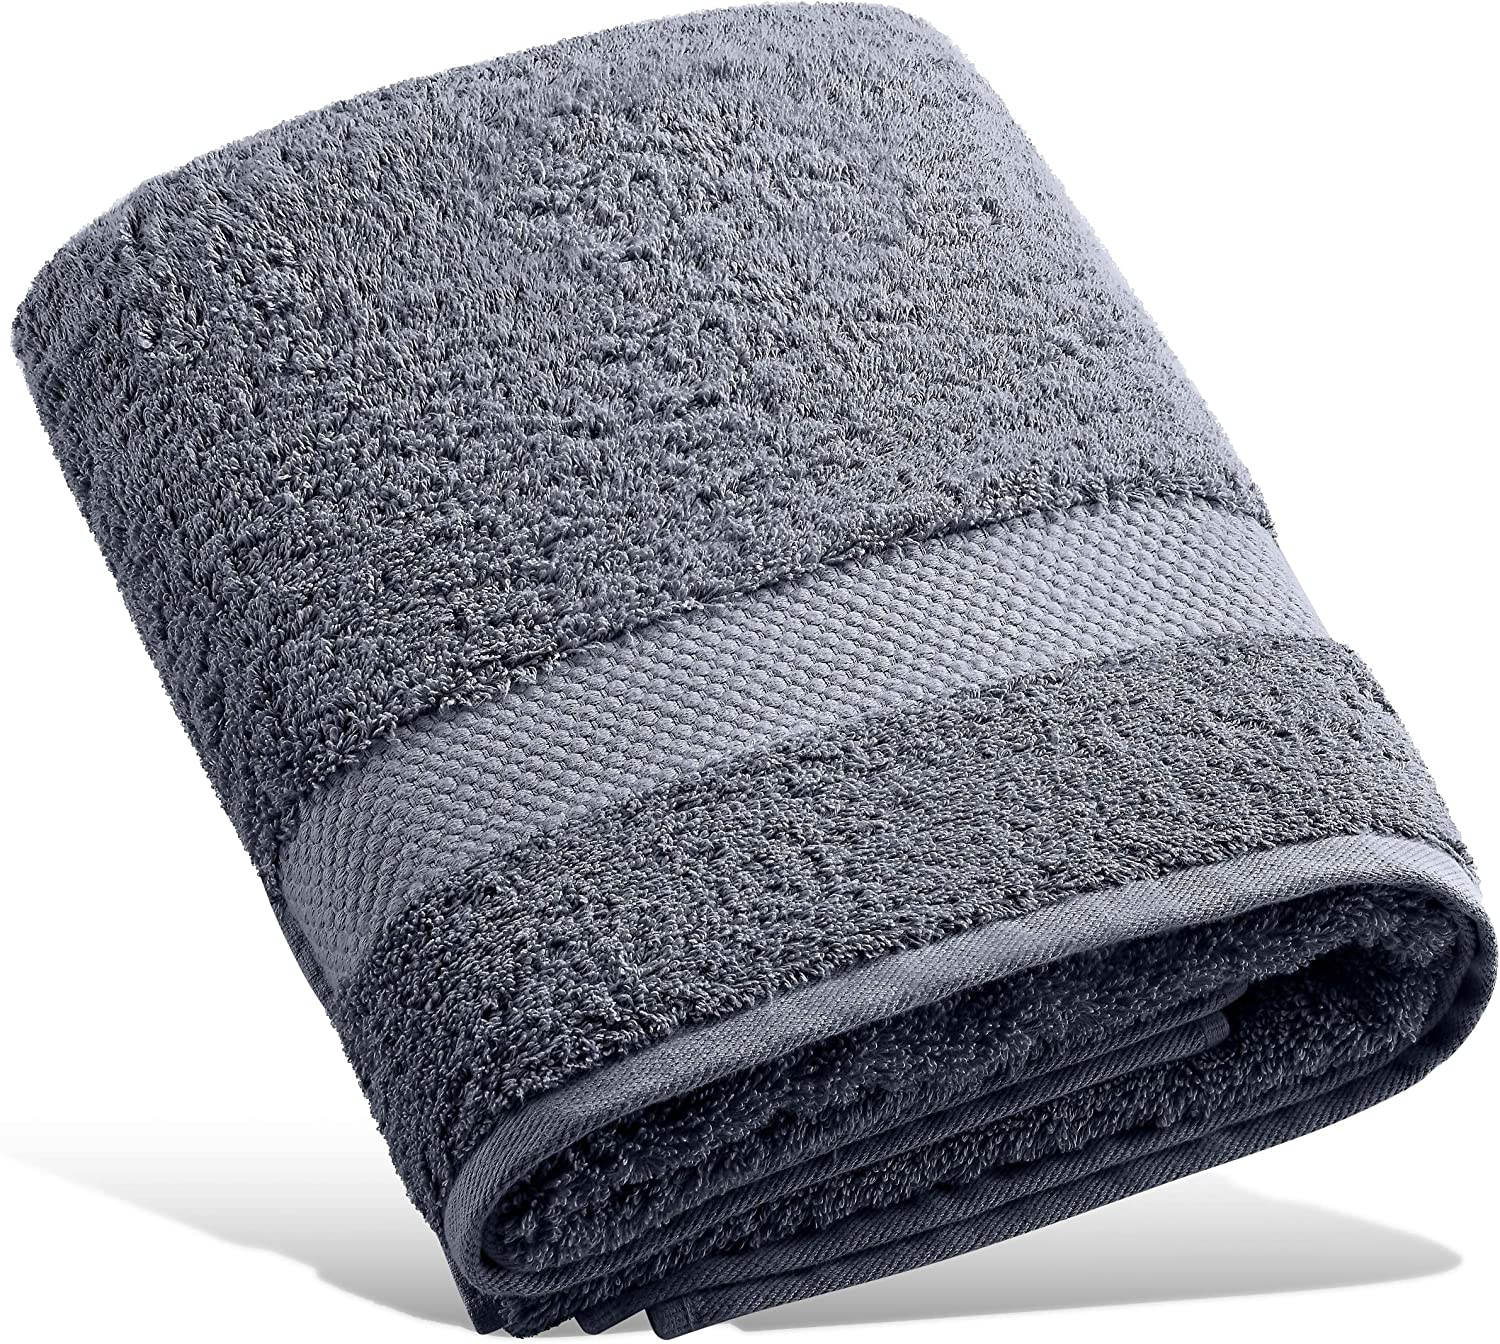 joluzzy Extra Large Bath Towel, Extreme Soft//Plush//Thick, 35 x 70 Inches